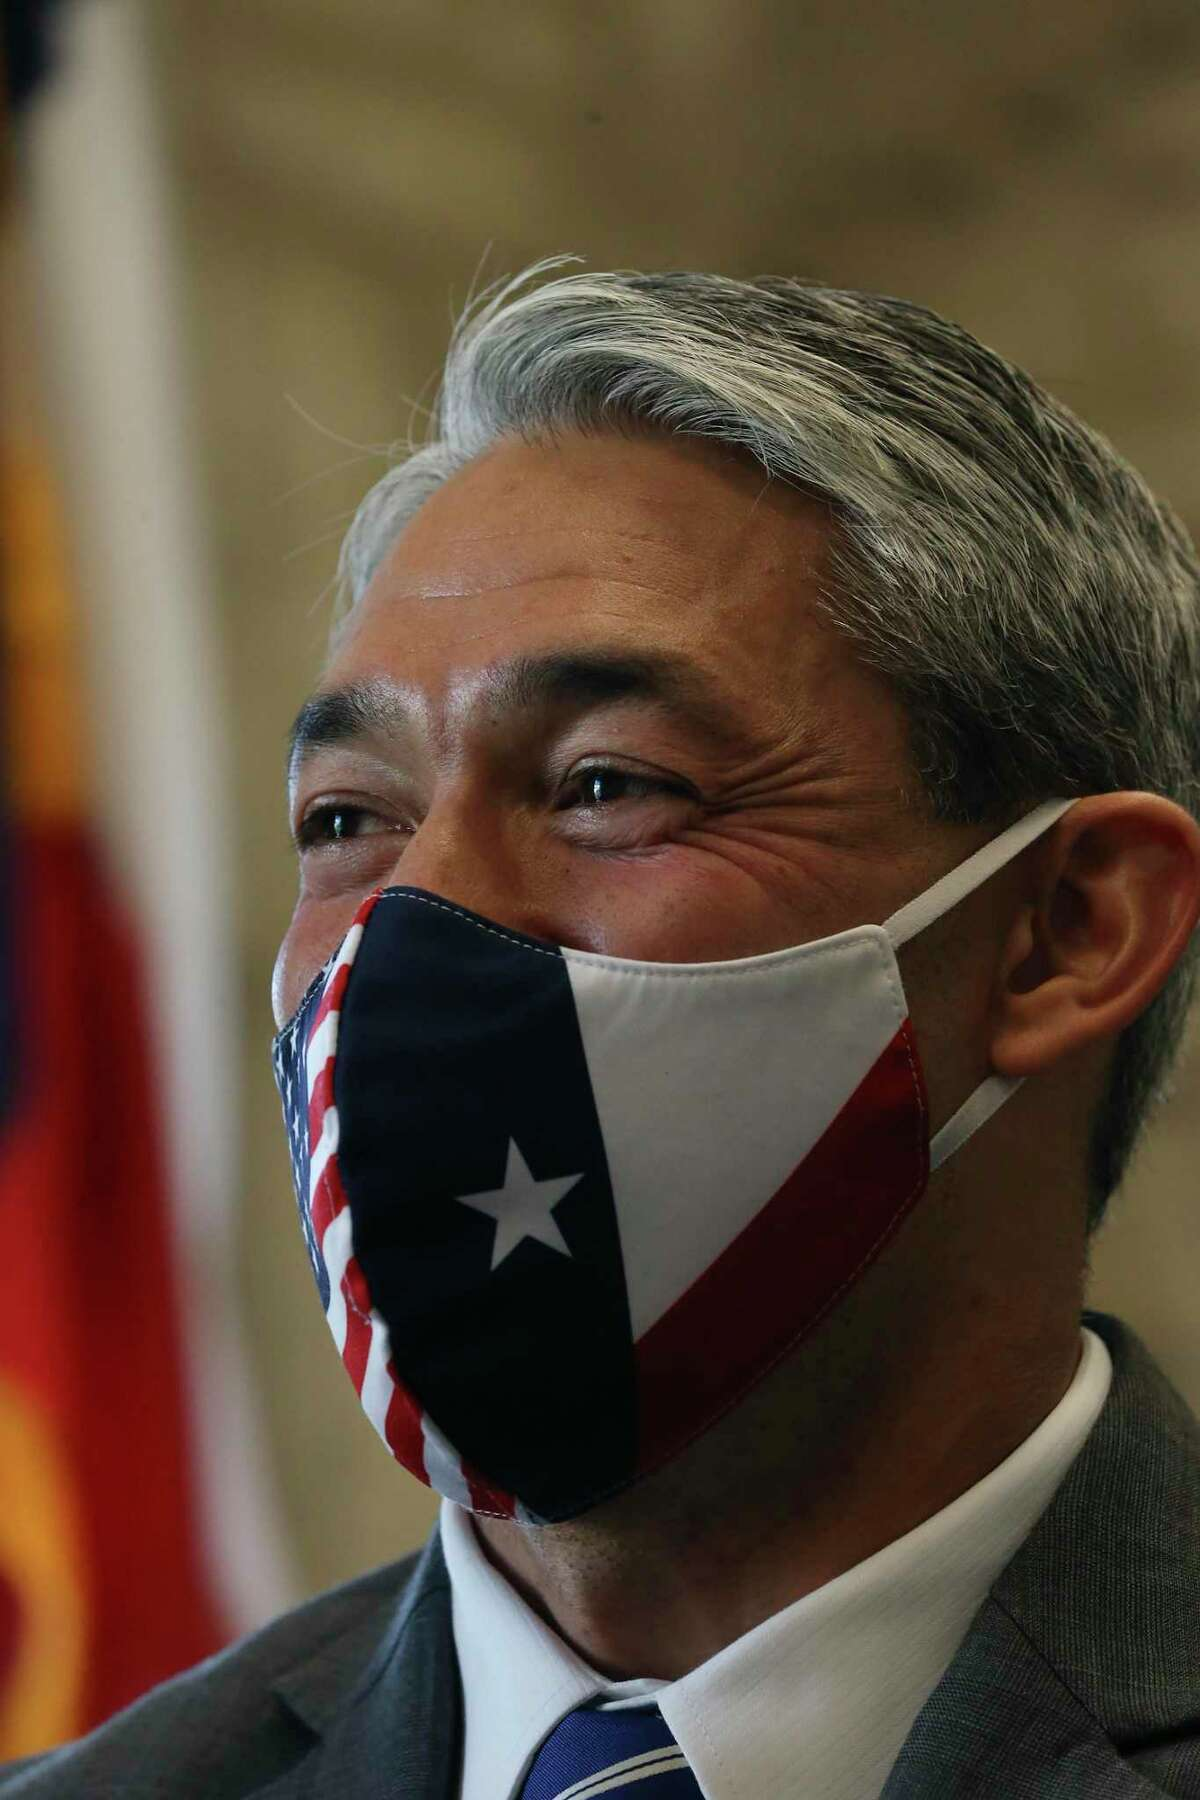 San Antonio Mayor Ron Nirenberg laughs during a break in a B session meeting, Wednesday, April 7, 2021.